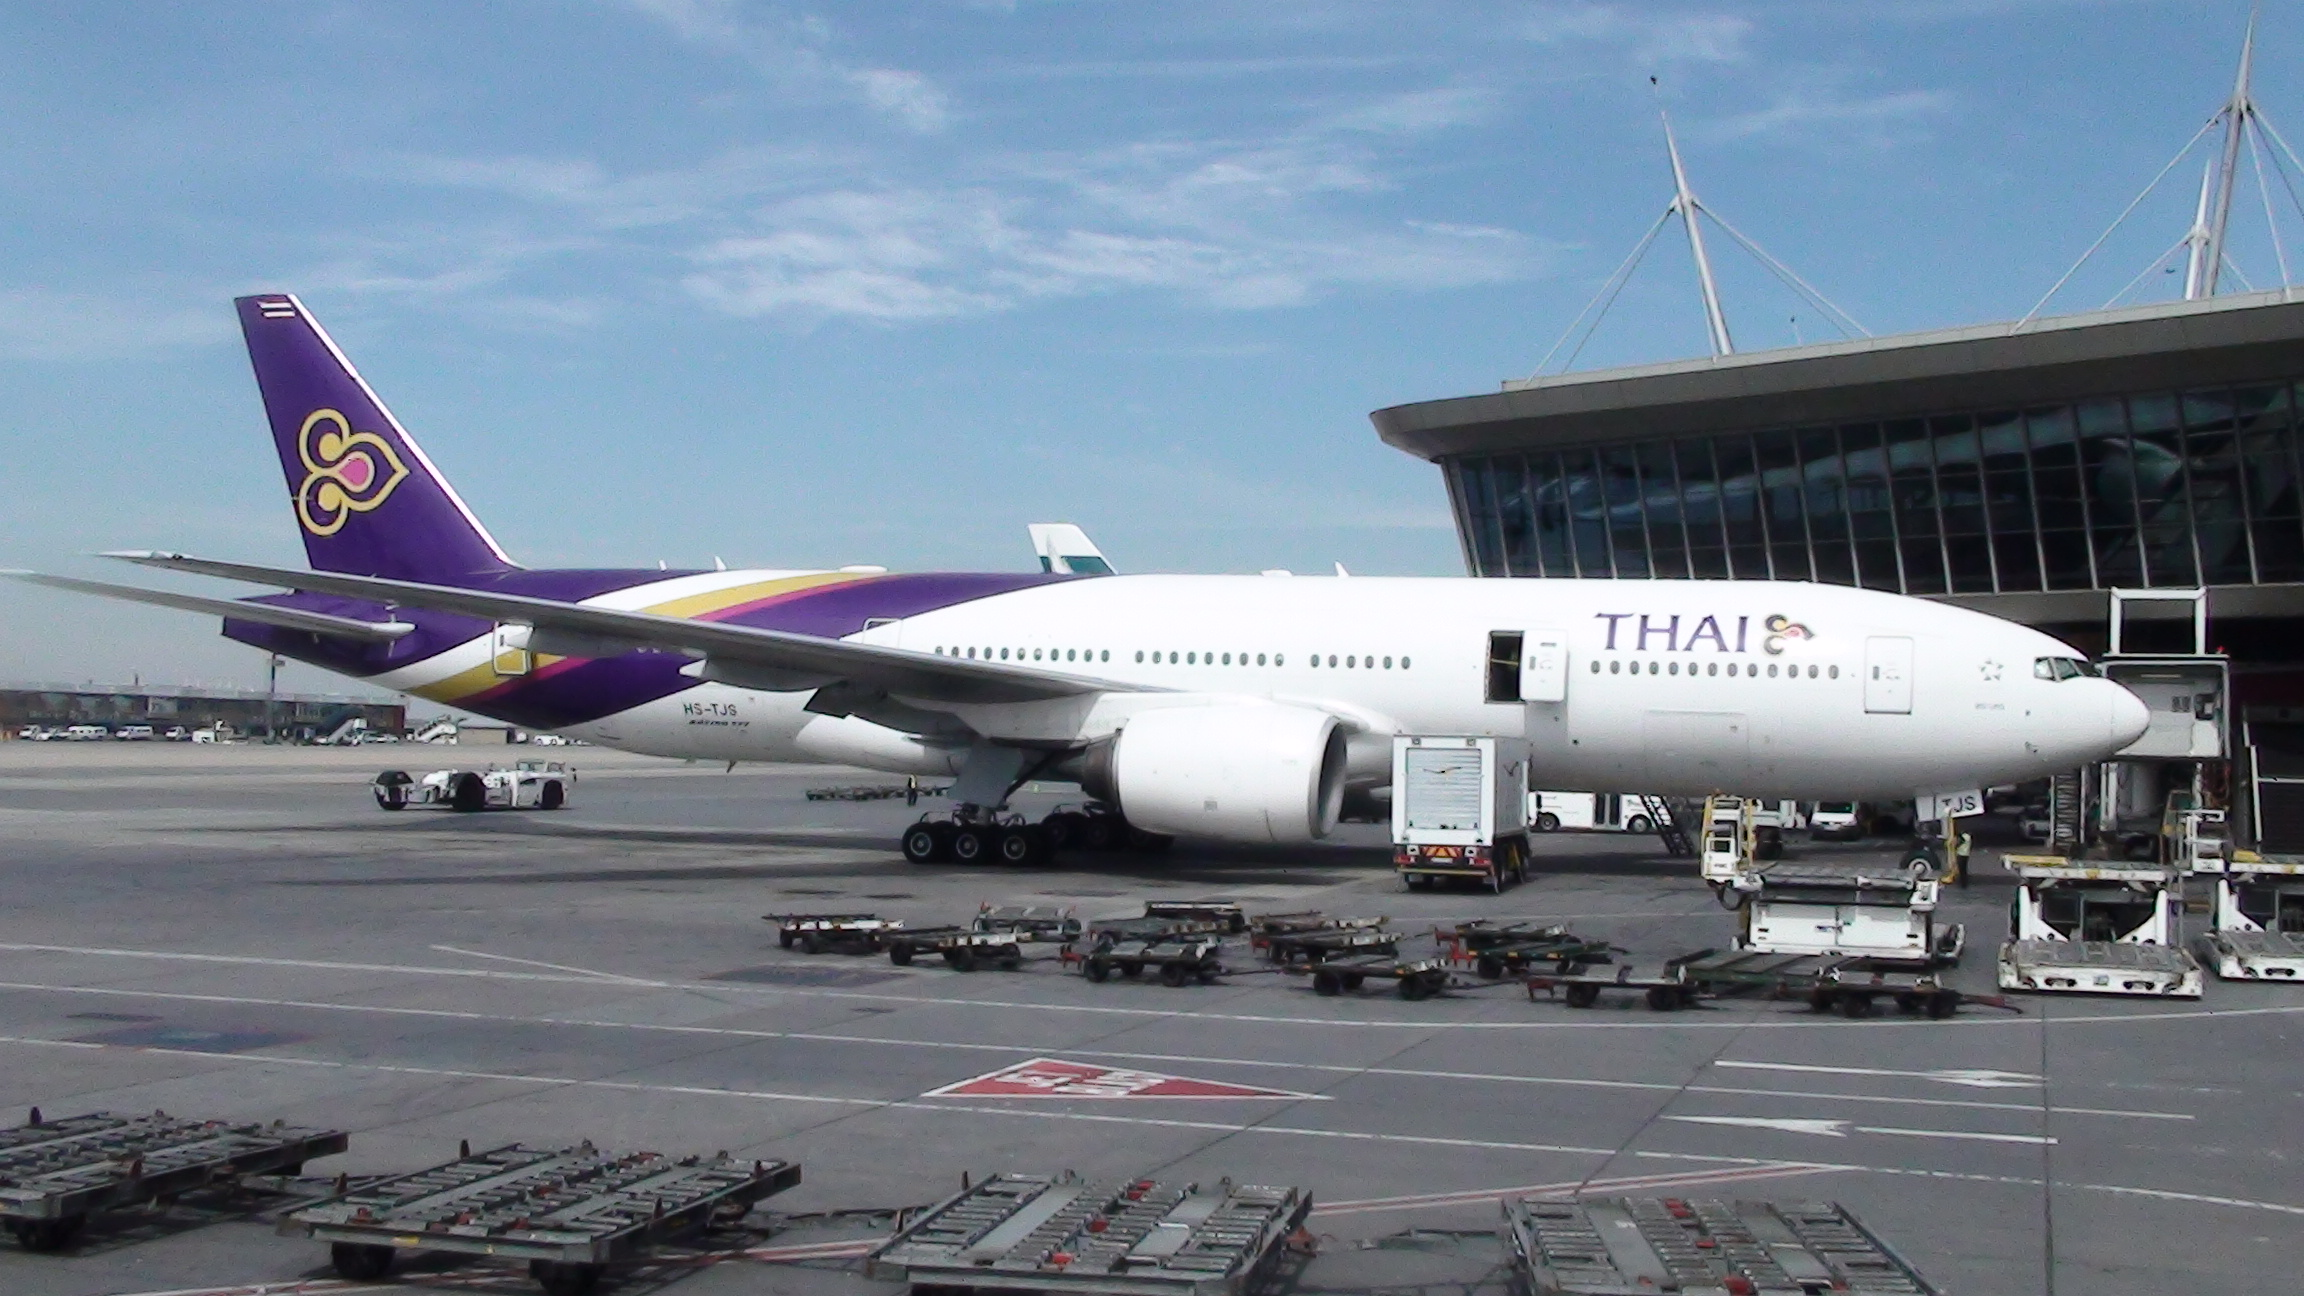 Download this Thai Airways Plane Parked Tambo International Airport picture